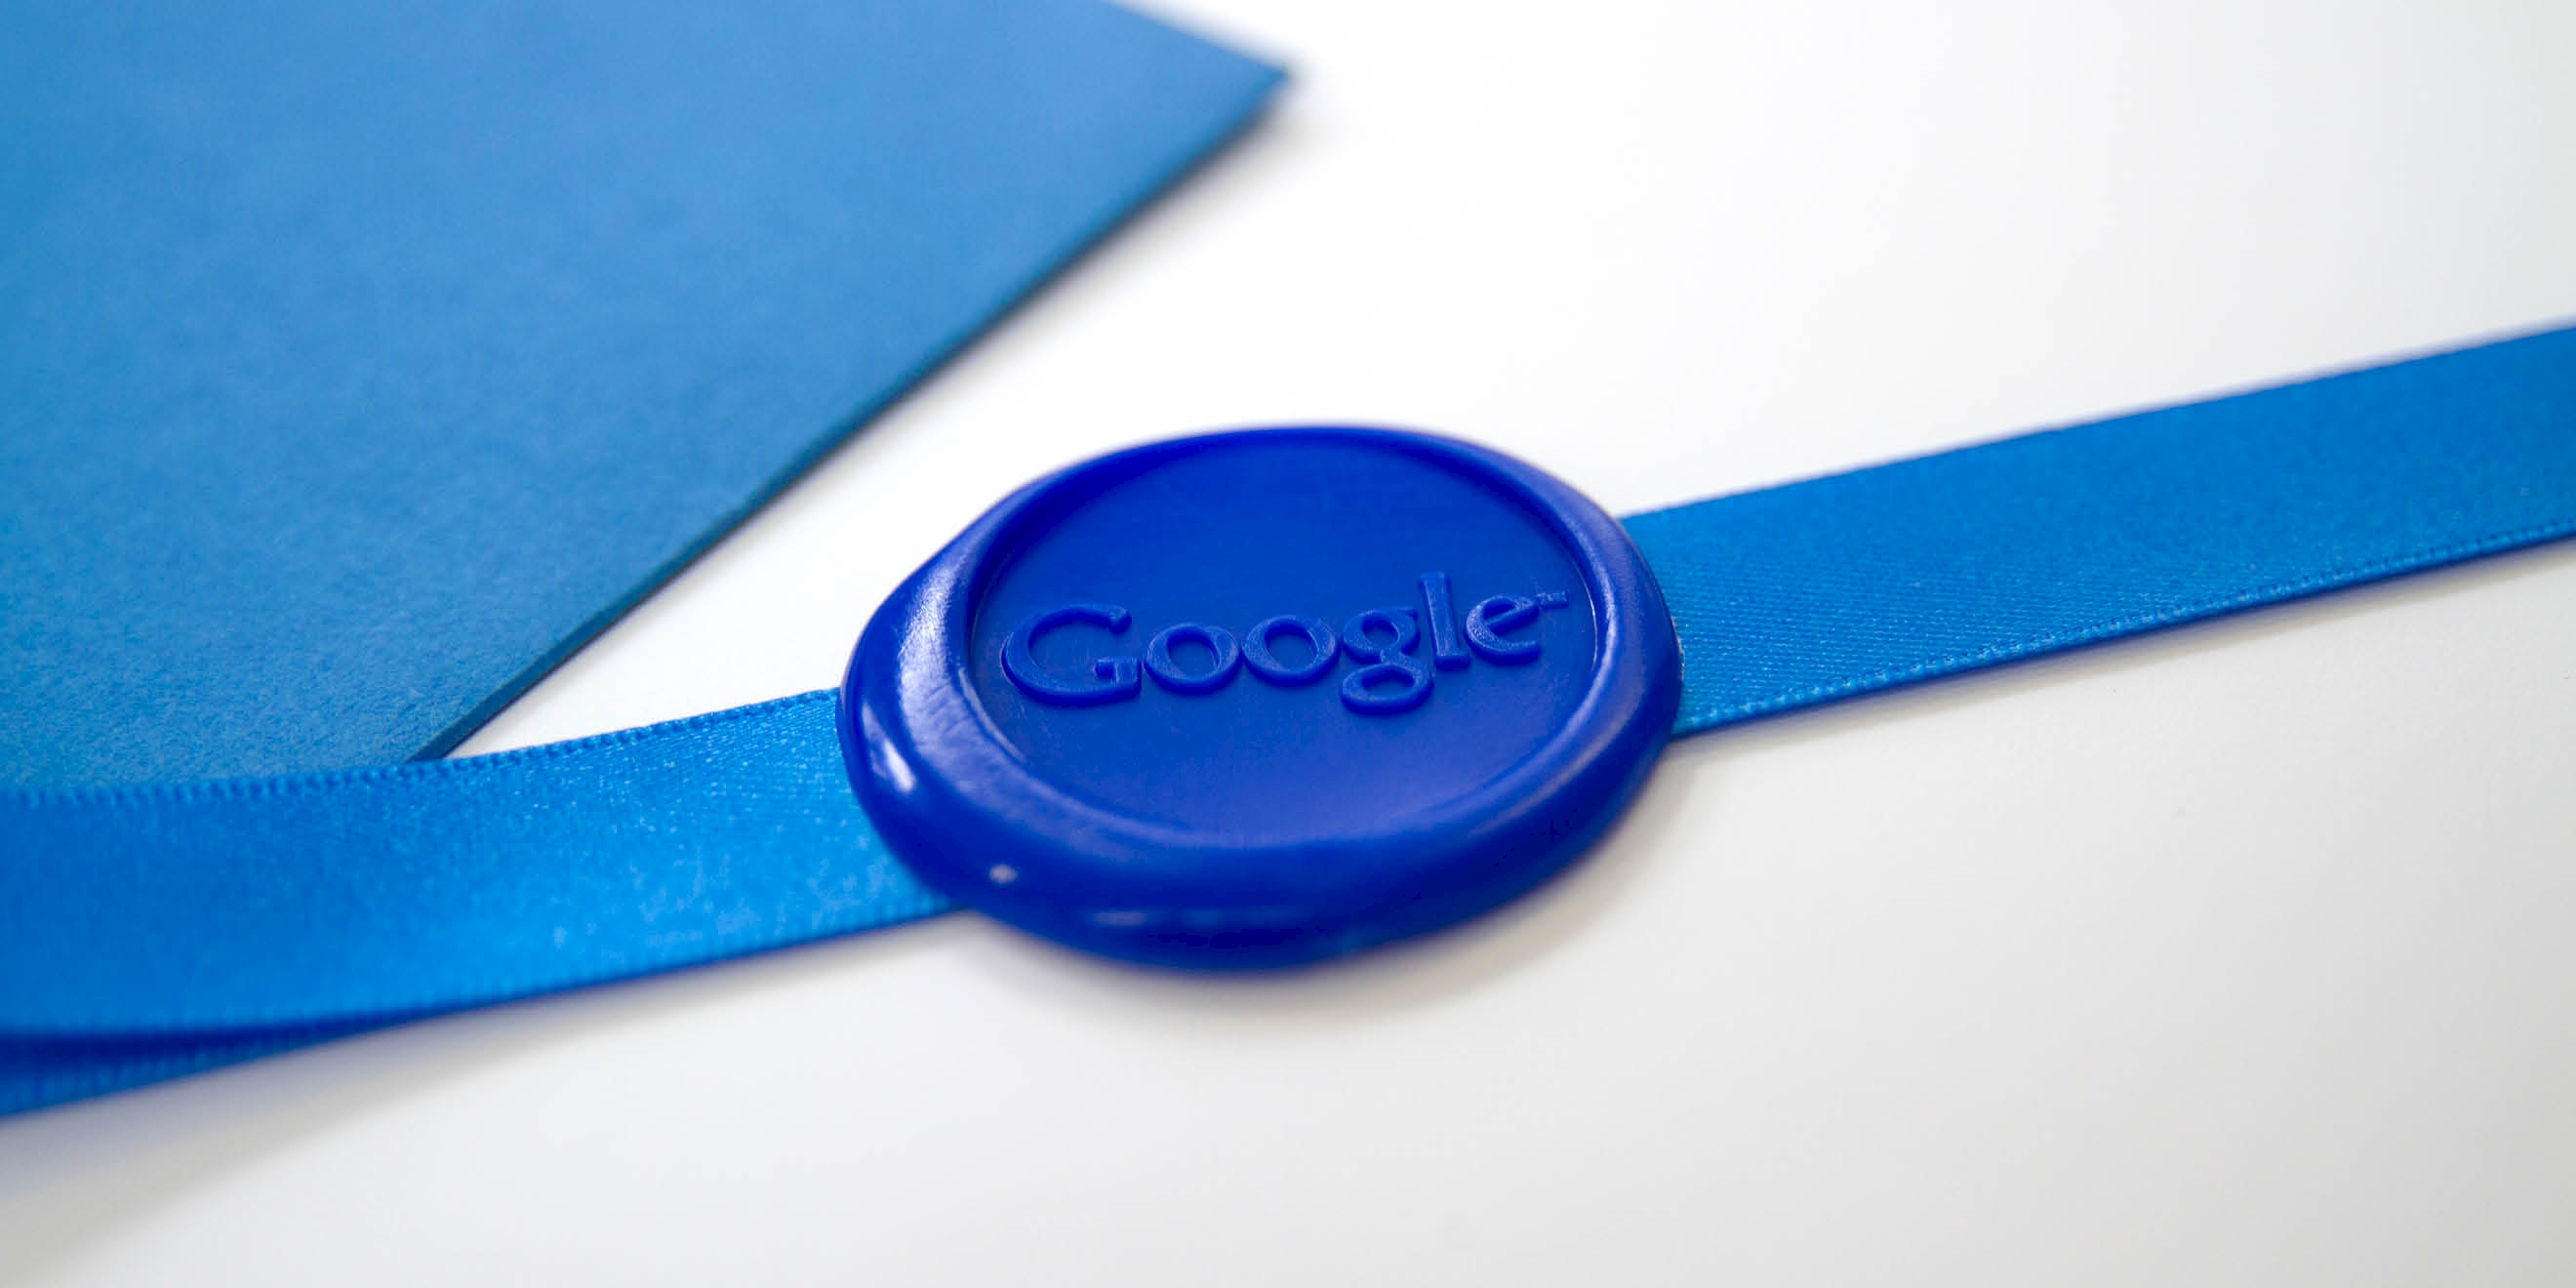 Google Think Quarterly magazine wax seal by Human After All